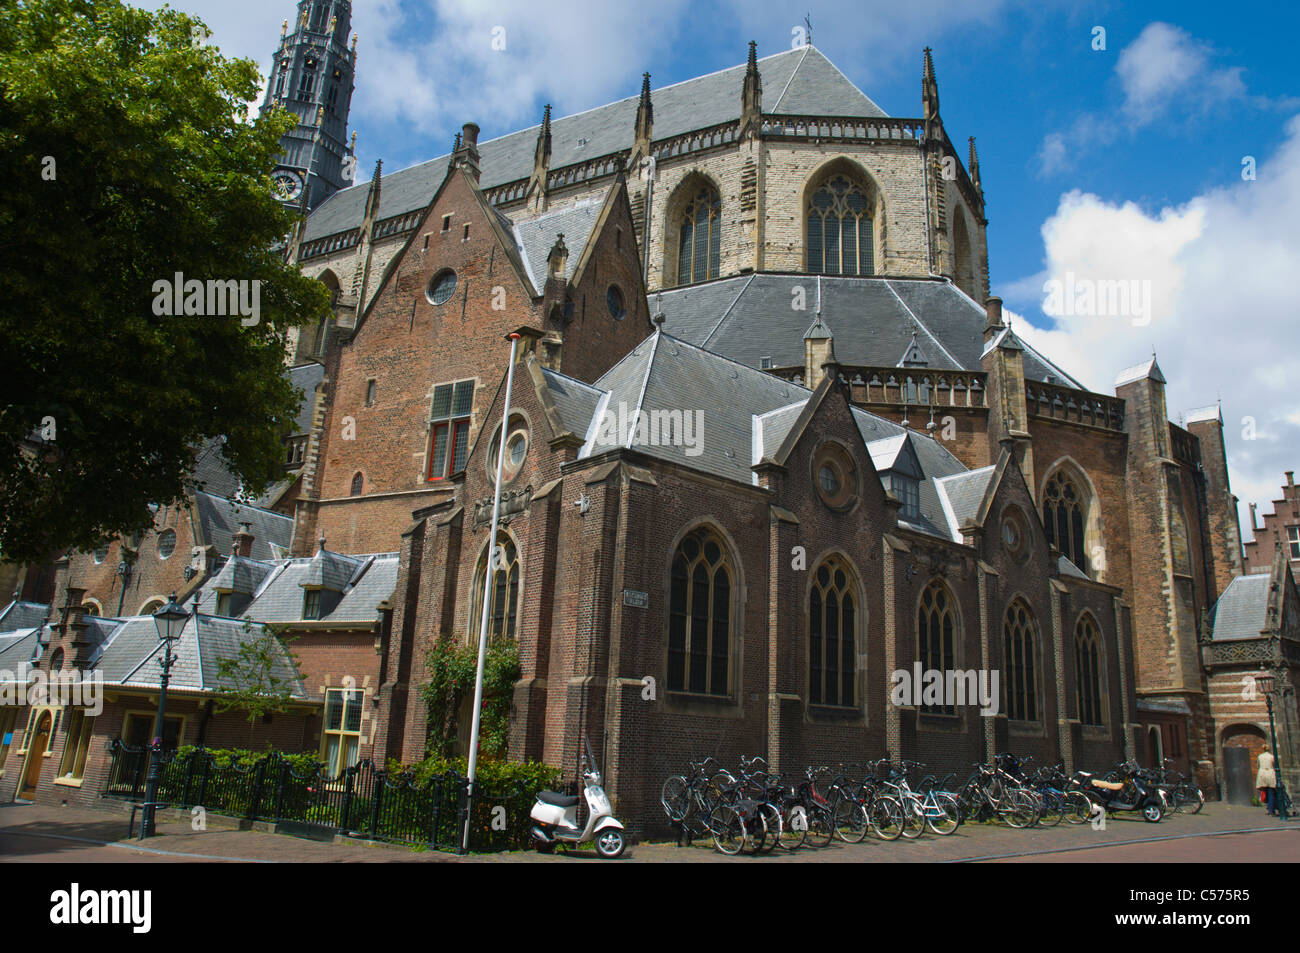 grote kerk photos grote kerk images alamy. Black Bedroom Furniture Sets. Home Design Ideas